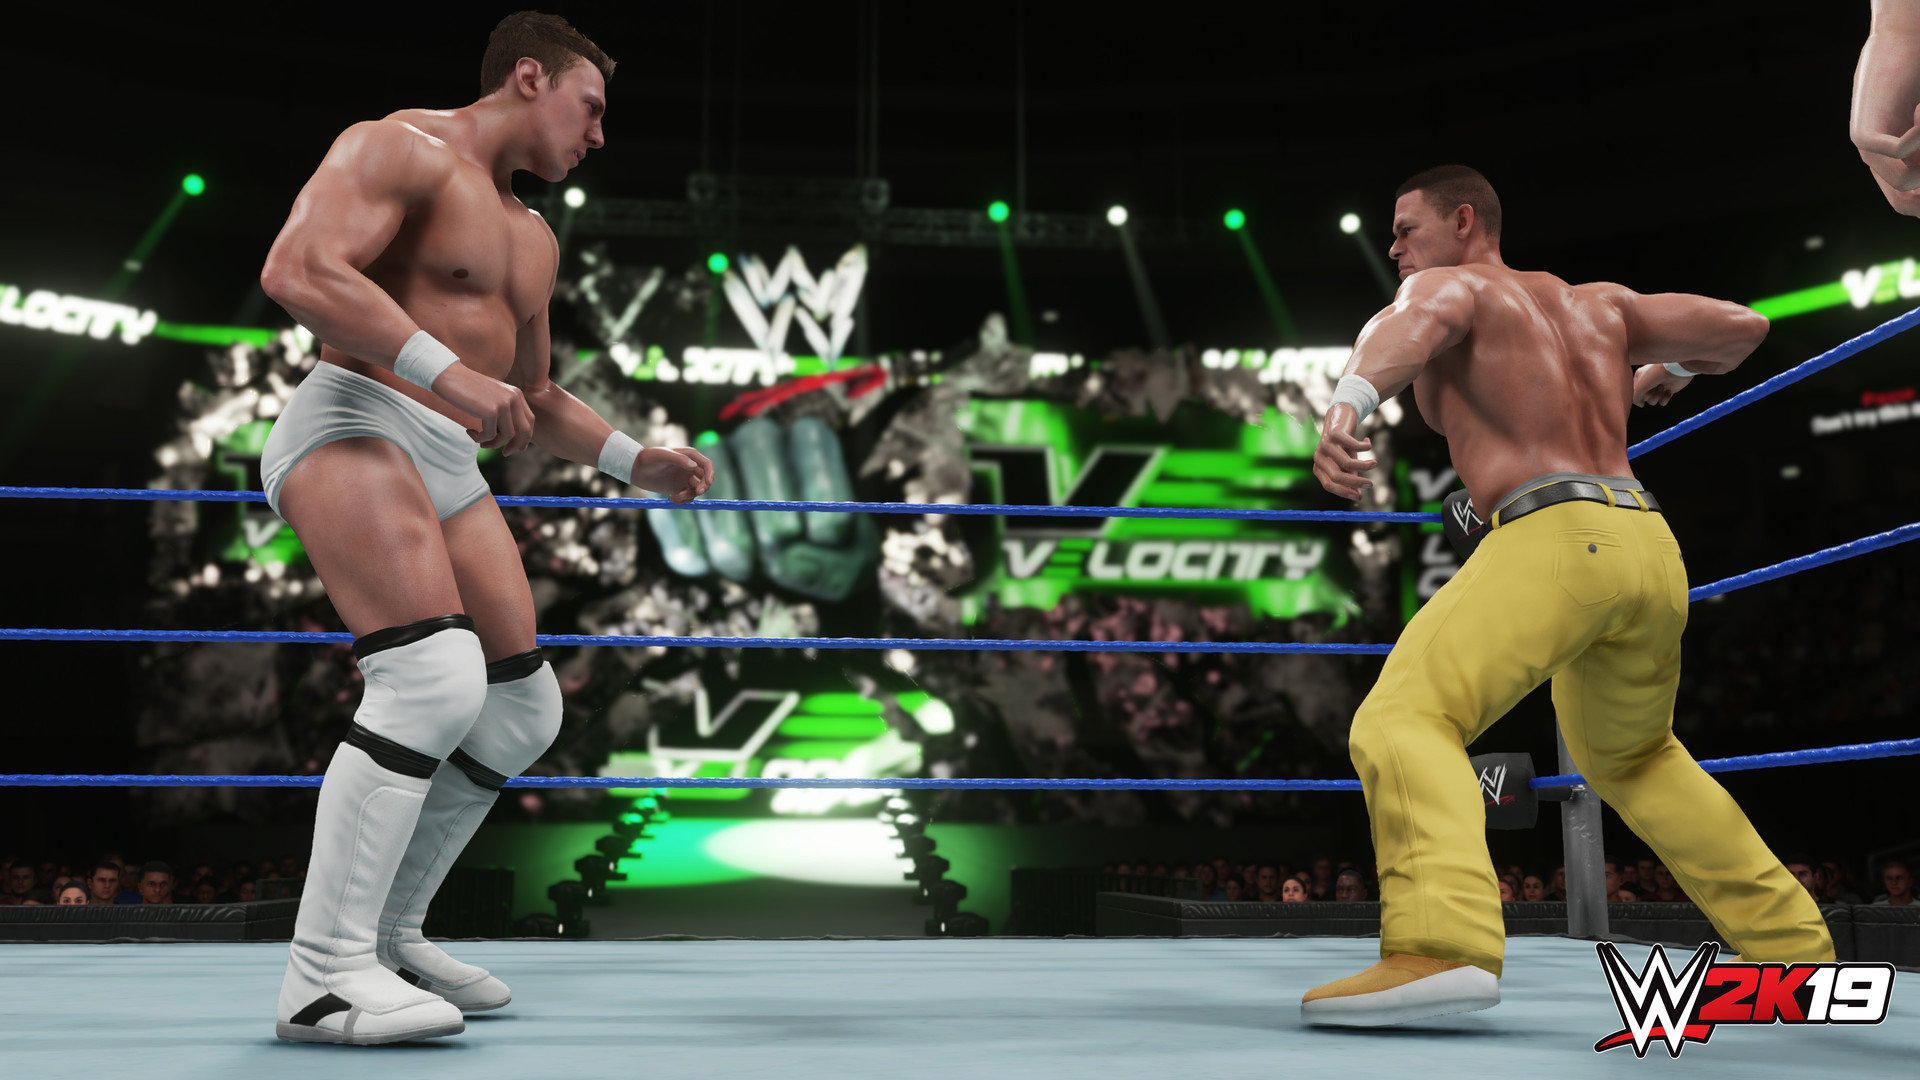 Wwe raw game free download full version for pc cnet